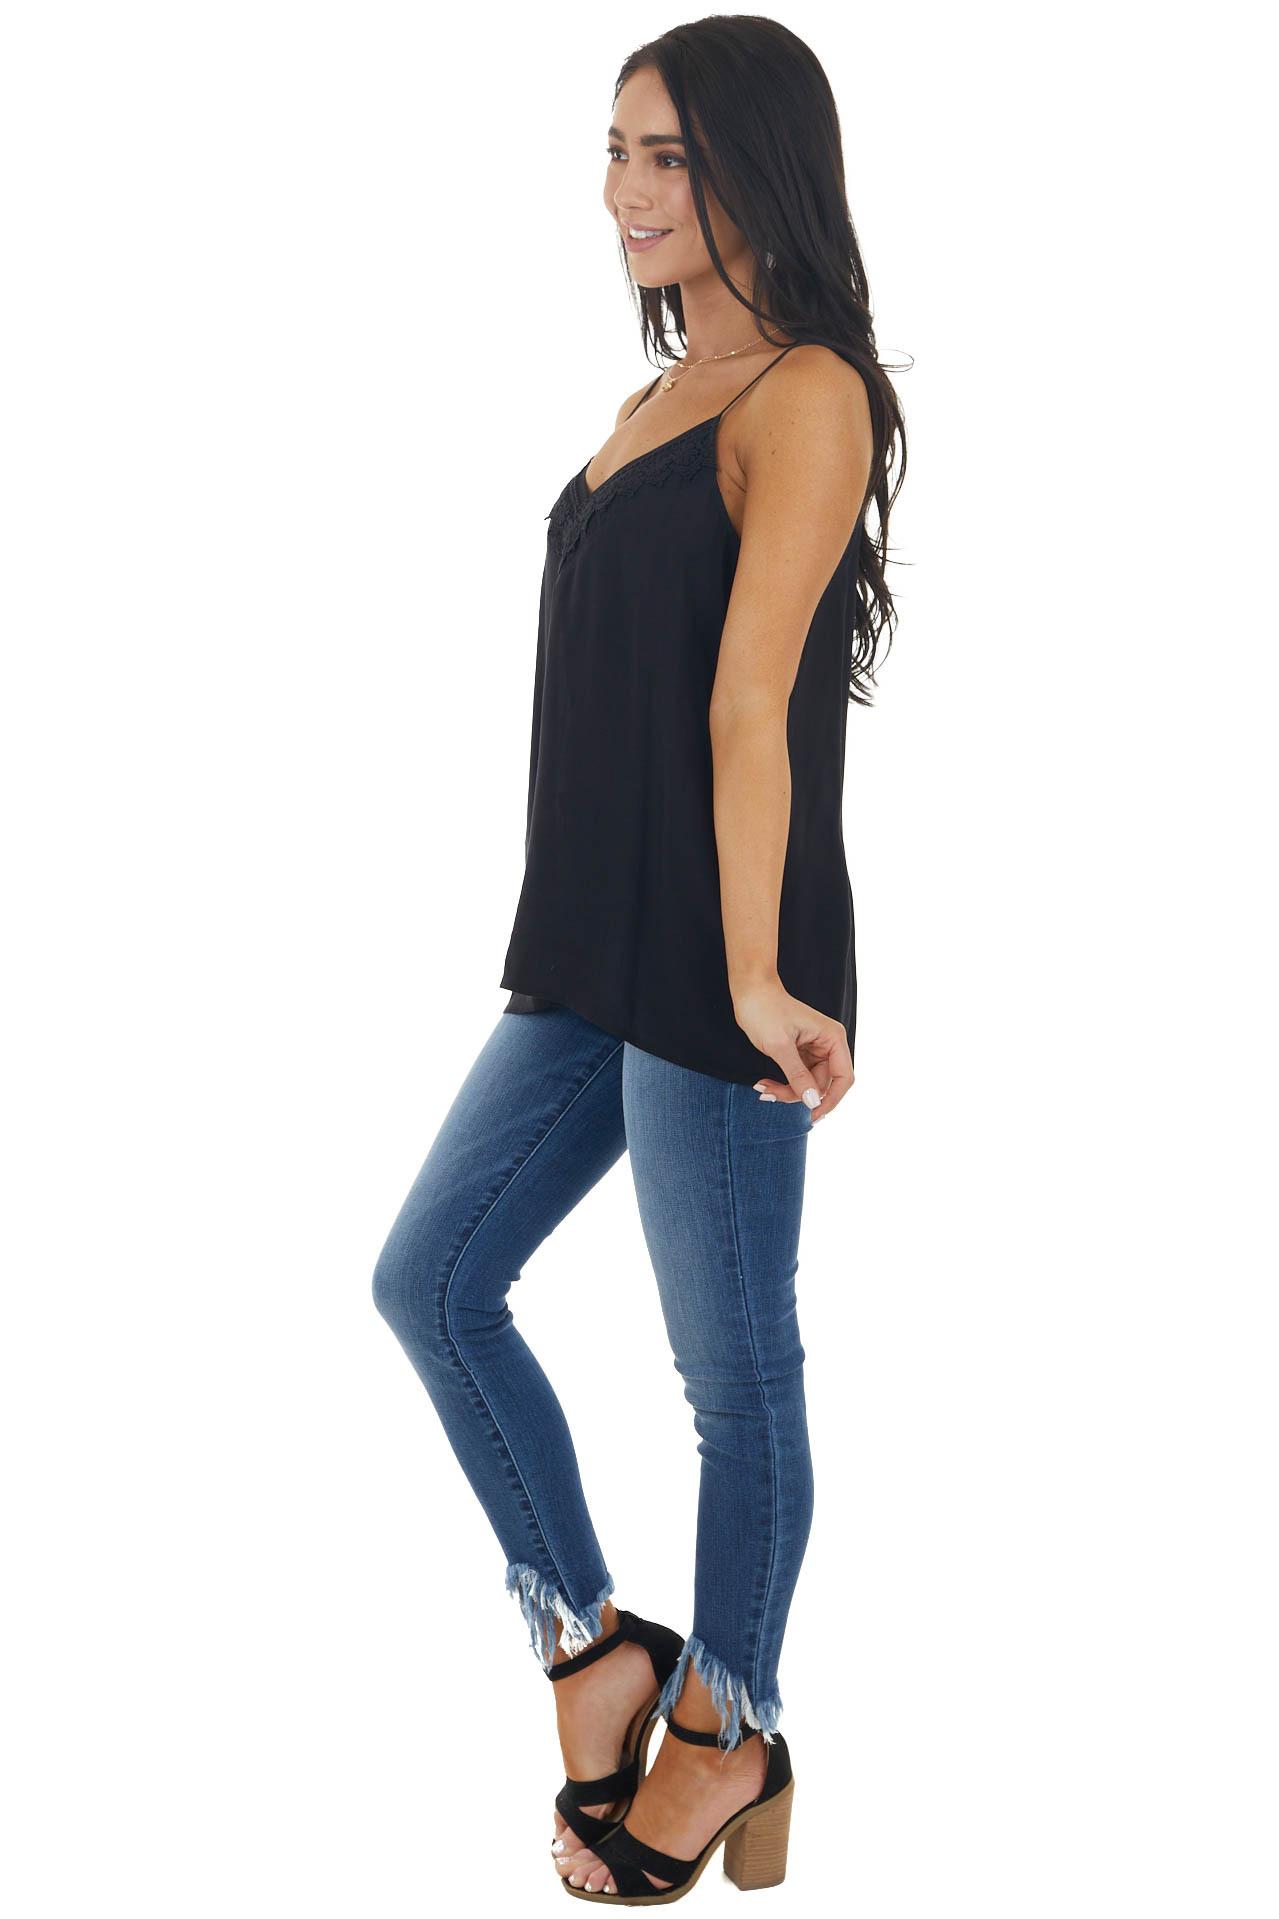 Black V Neck Sleeveless Cami Tank Top with Lace Detail